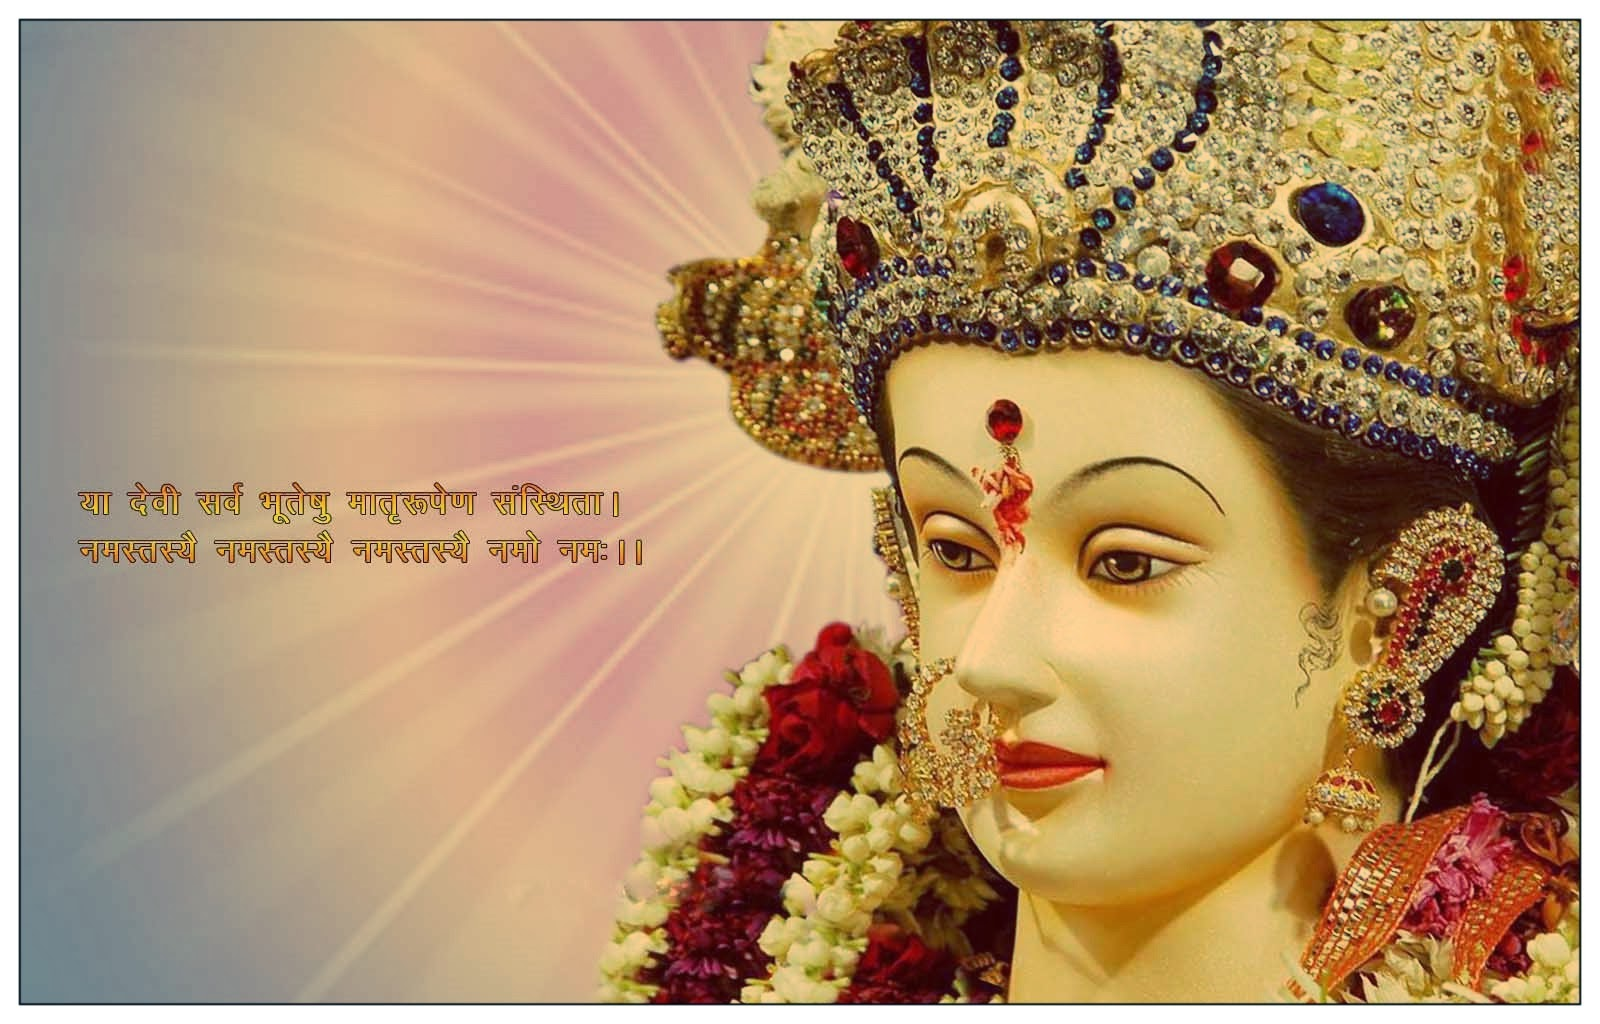 Popular Wallpaper Lord Devi - ILOwrE  Graphic_383514.jpg